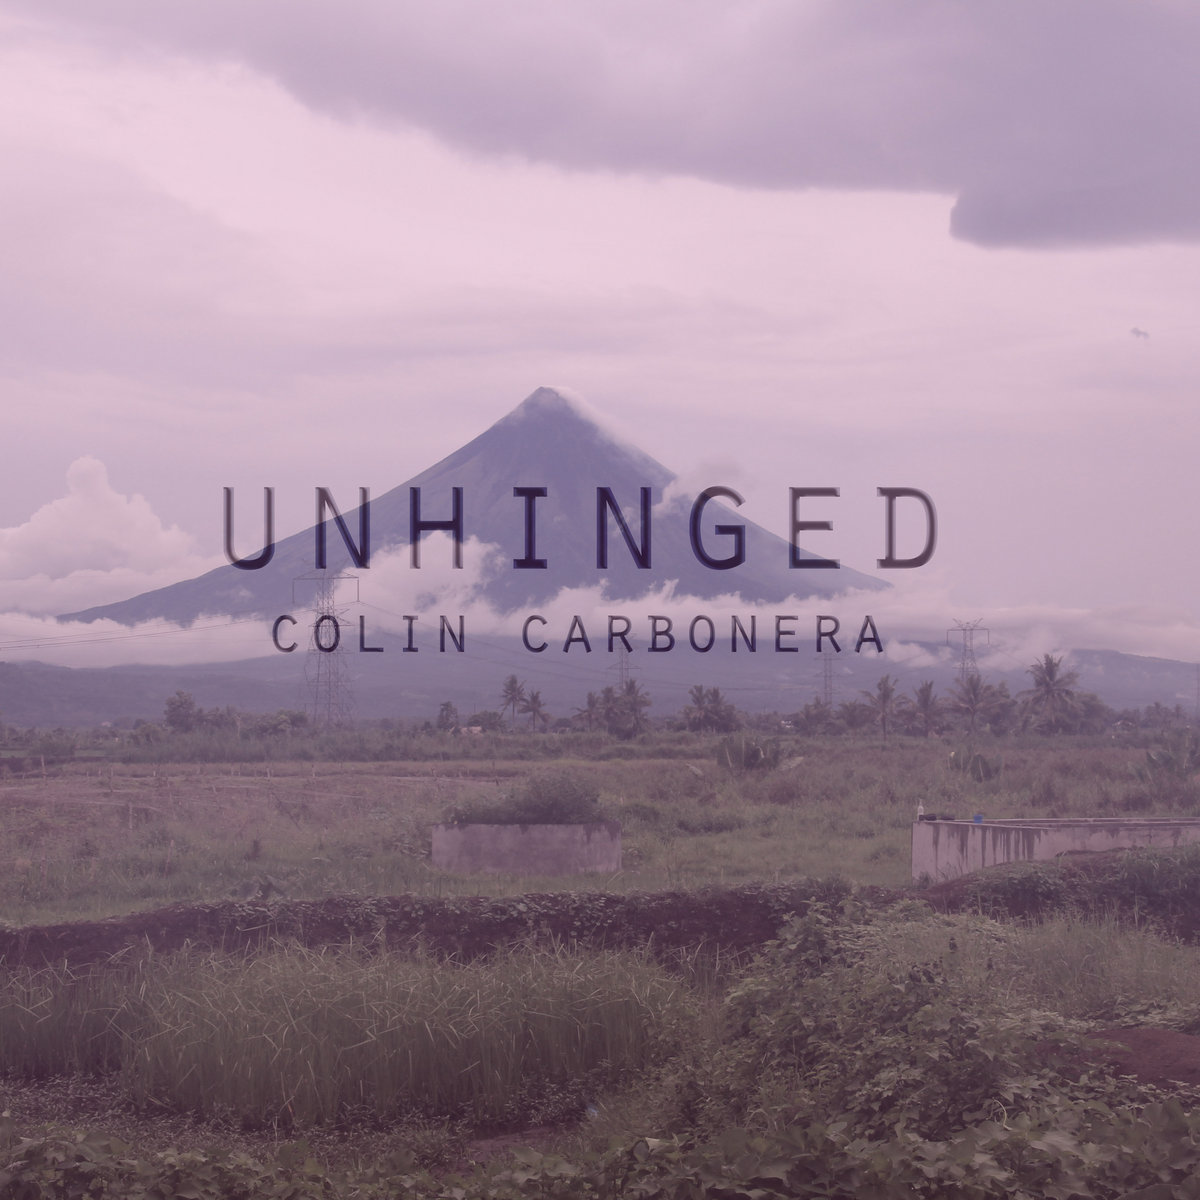 Colin Carbonera - Unhinged EP artwork